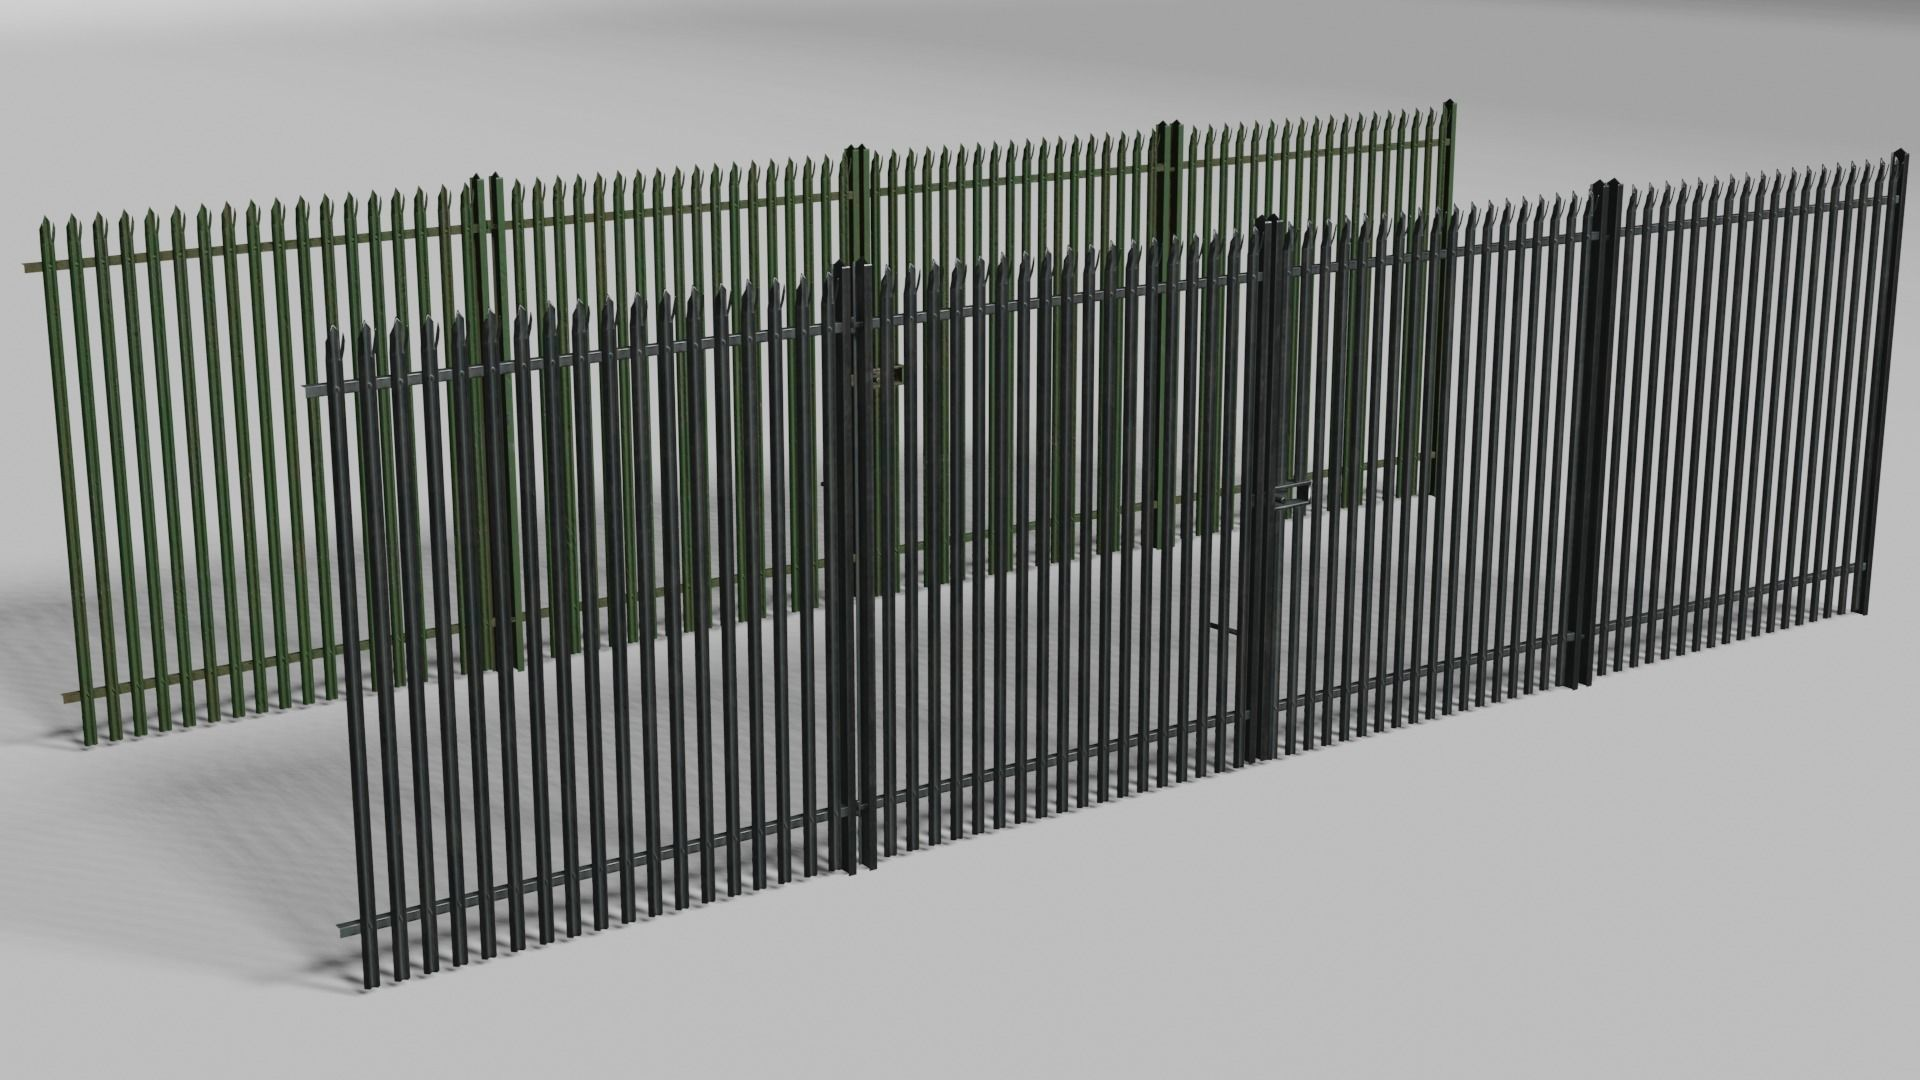 Low poly fence